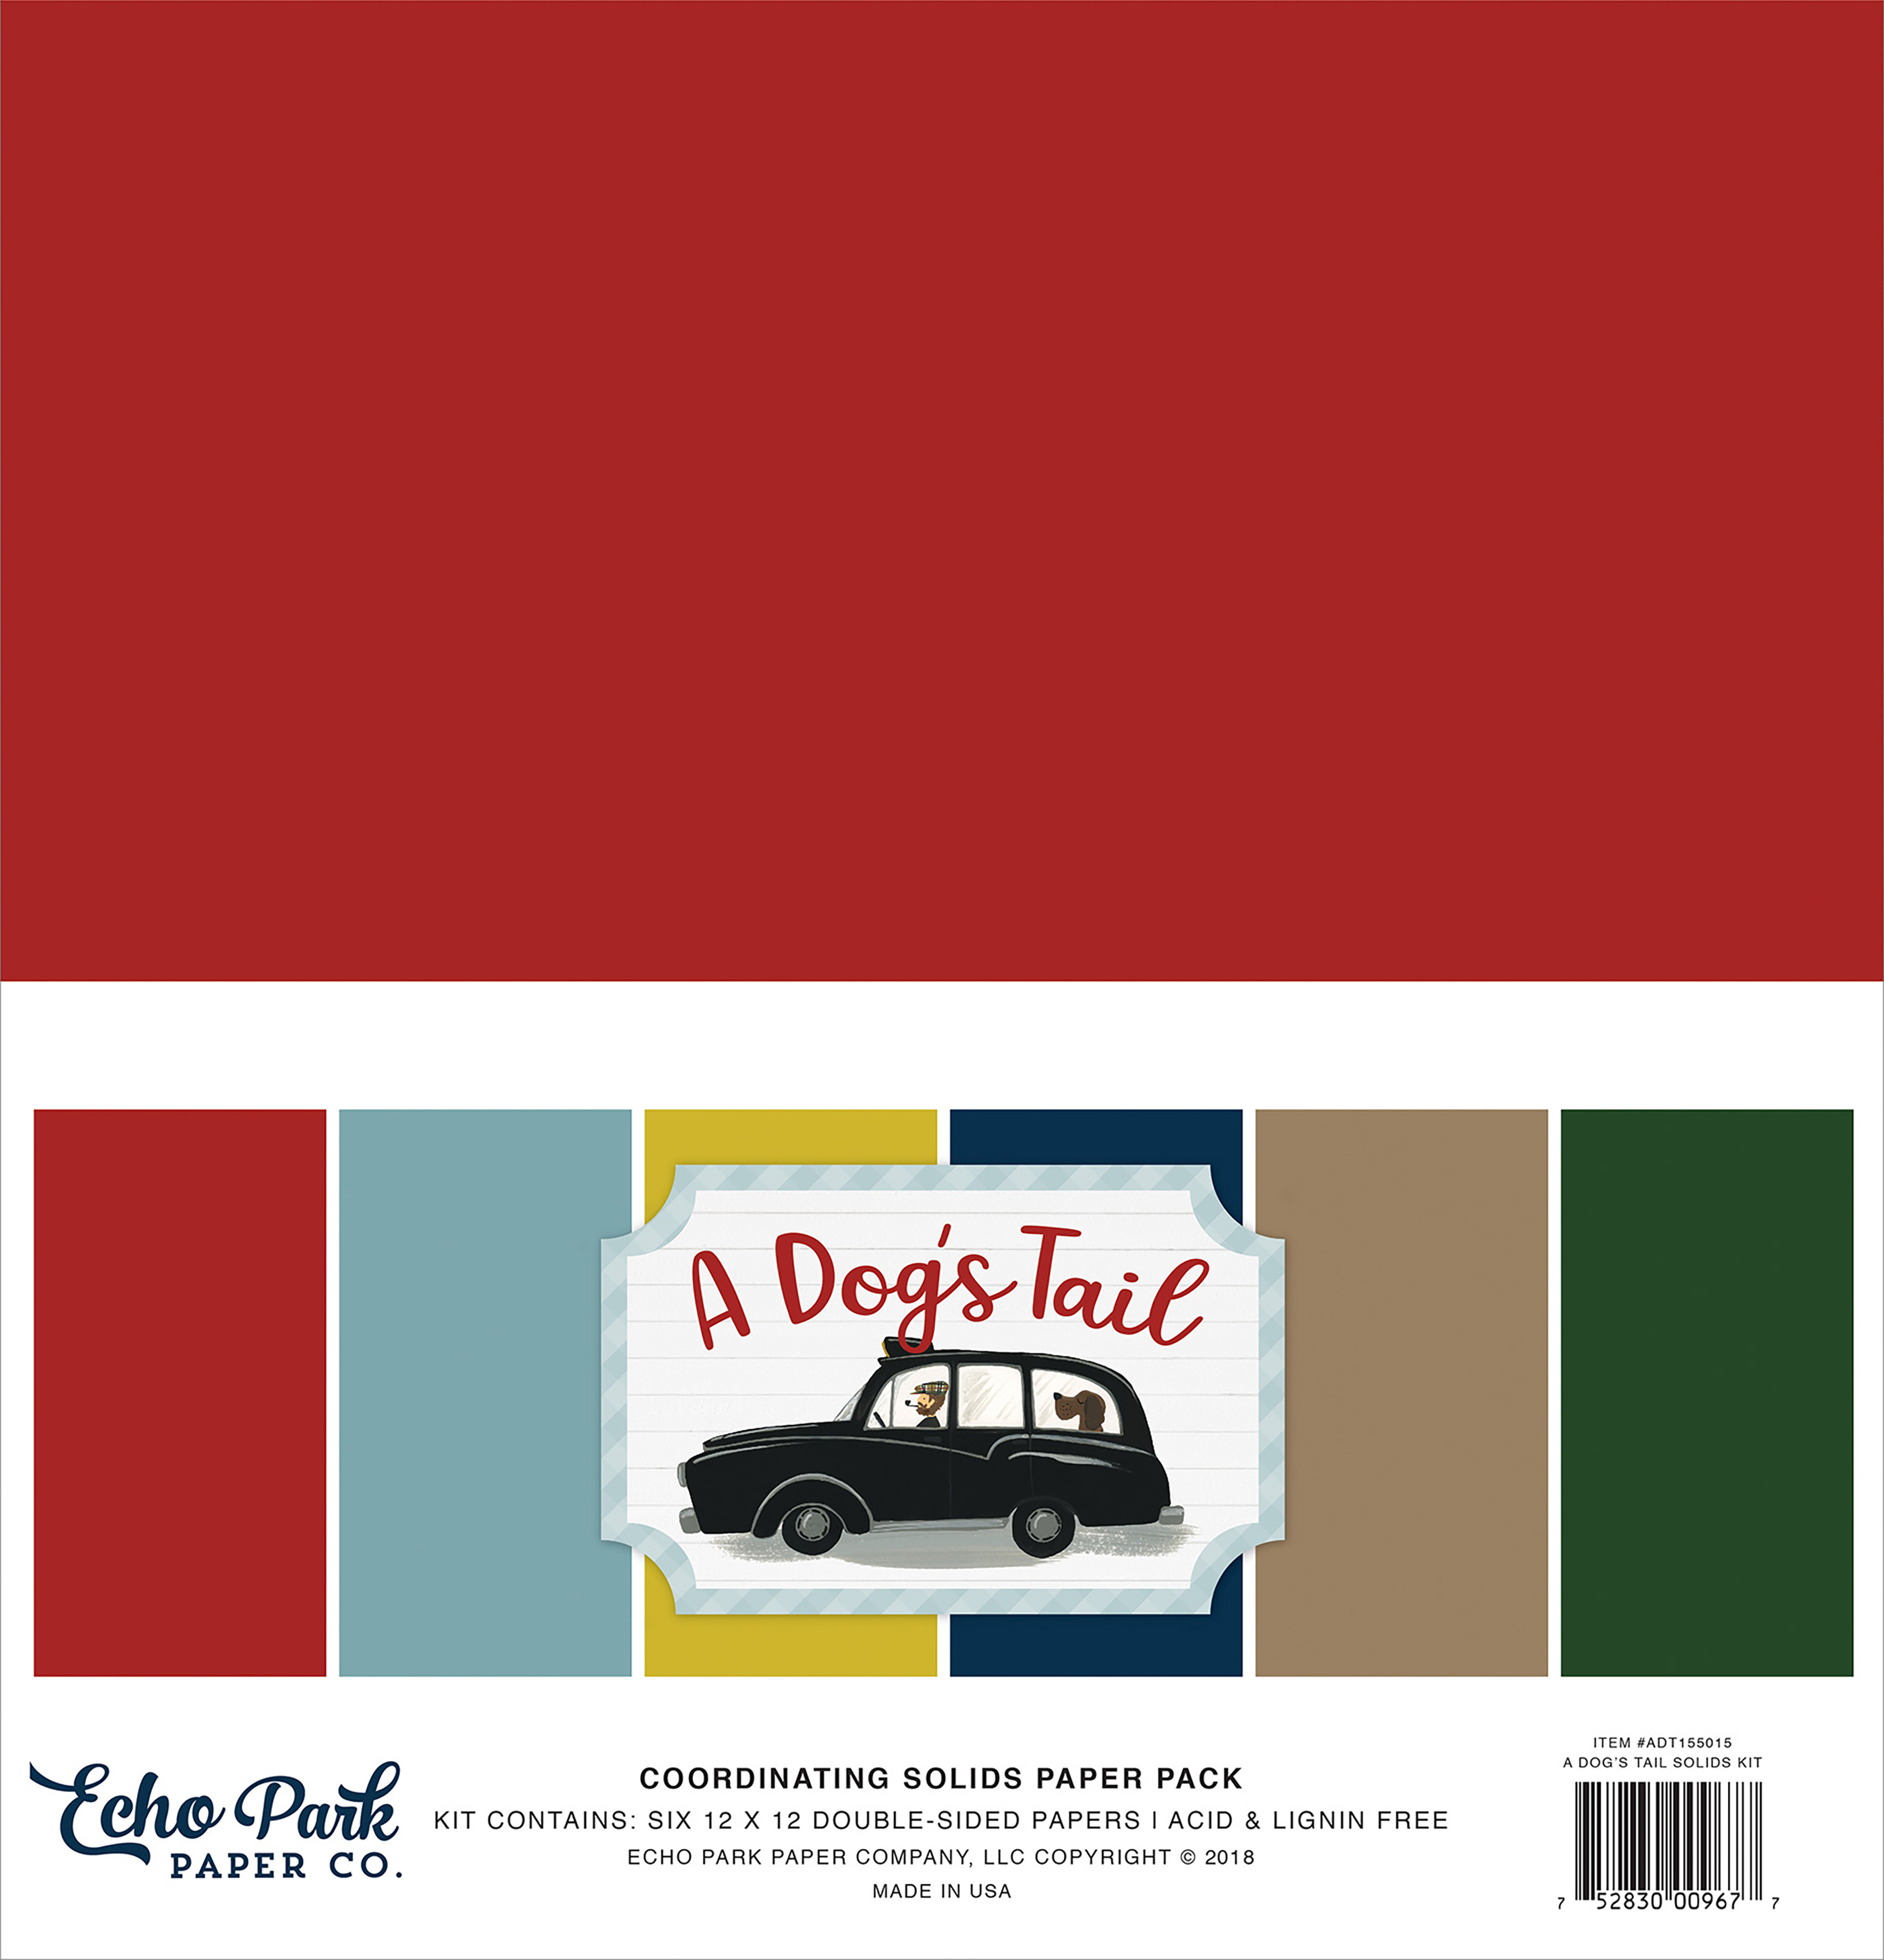 A Dog's Tail - Echo Park Double-Sided Solid Cardstock 12X12 6/Pkg 6 Colors